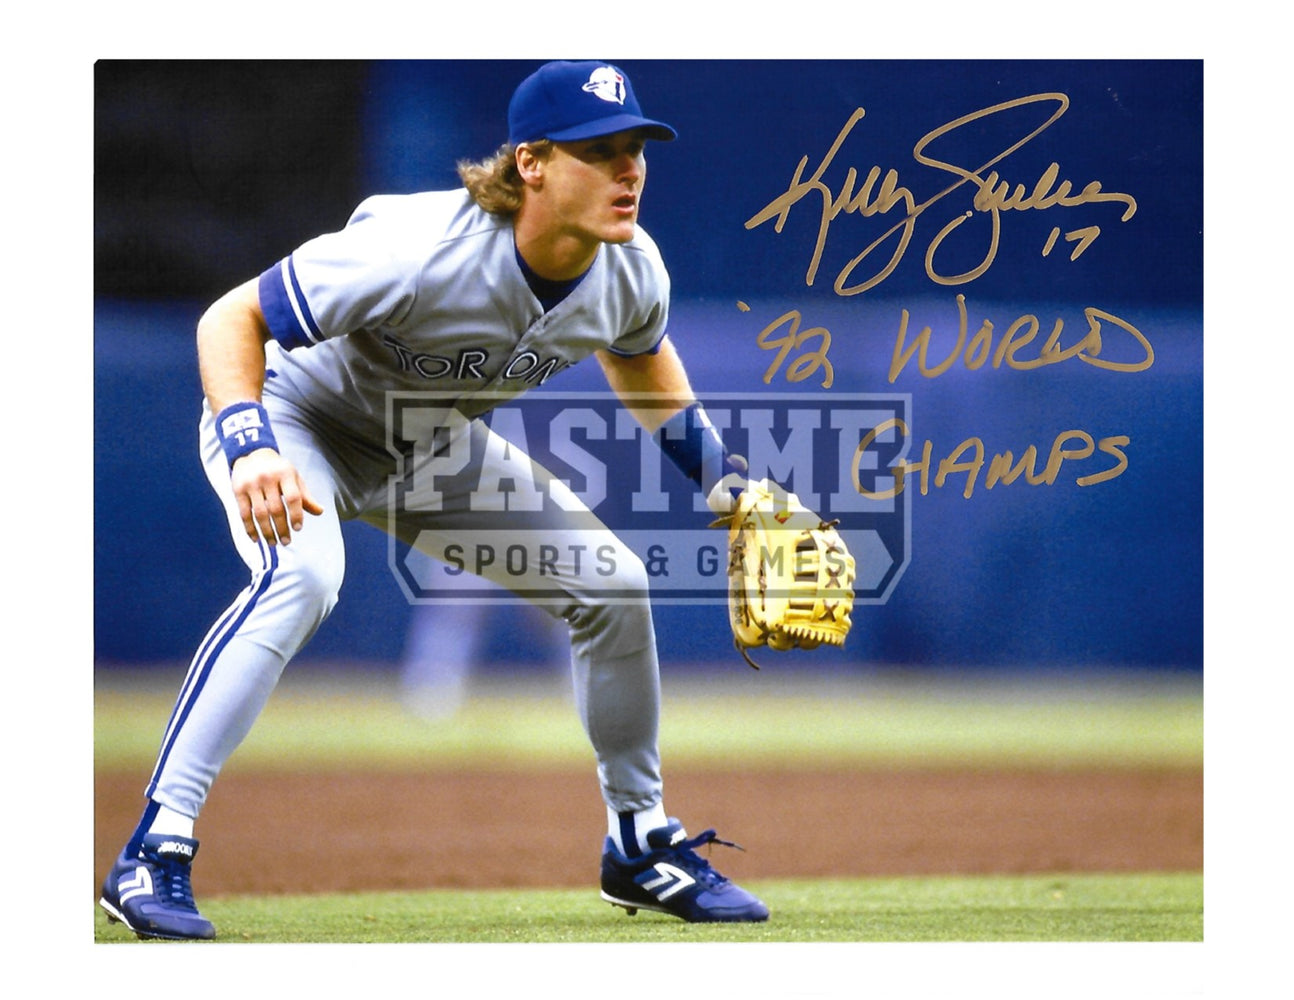 Kelly Gruber Autographed 8X10 Toronto Blue Jays (In Postion) - Pastime Sports & Games